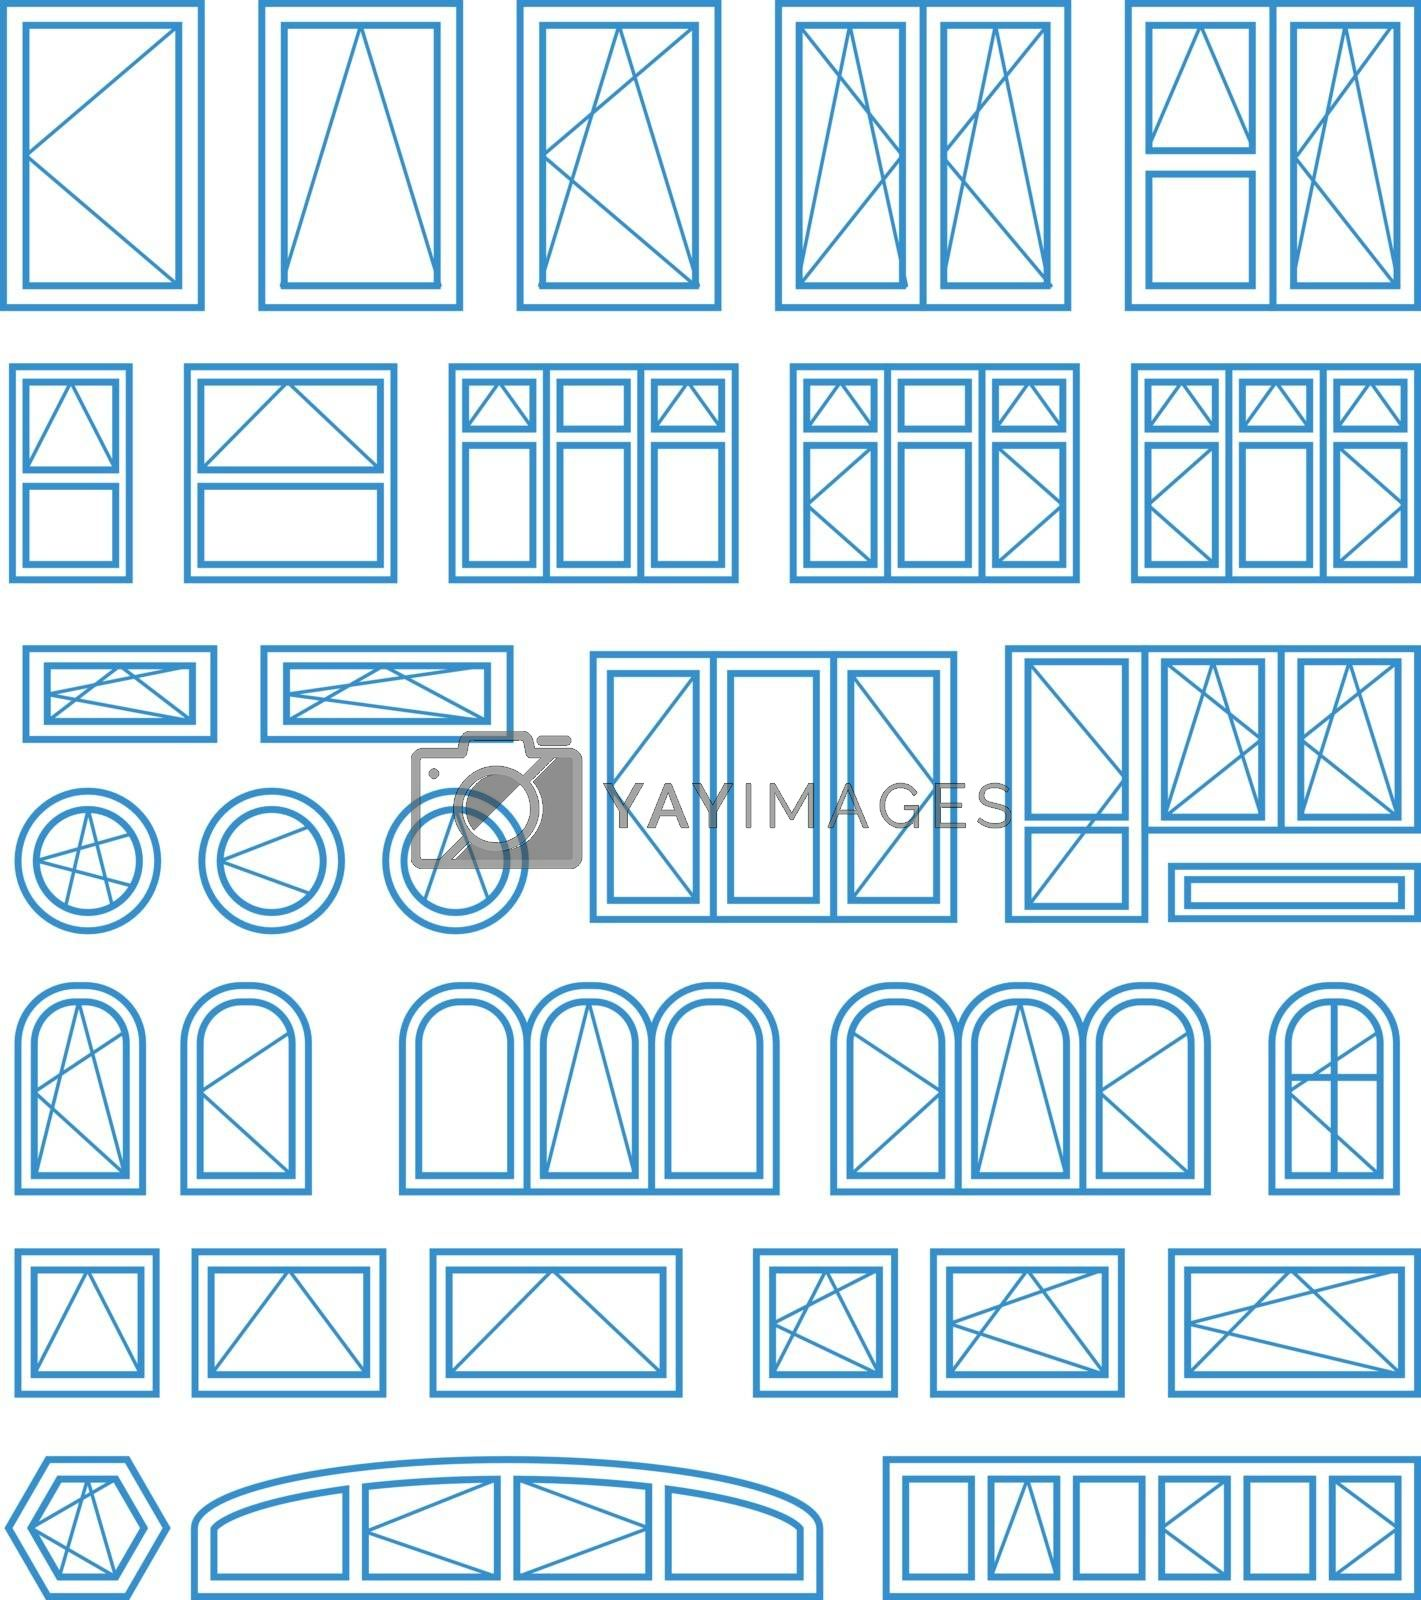 Types of opening and closing windows and doors. Vector illustration by sermax55